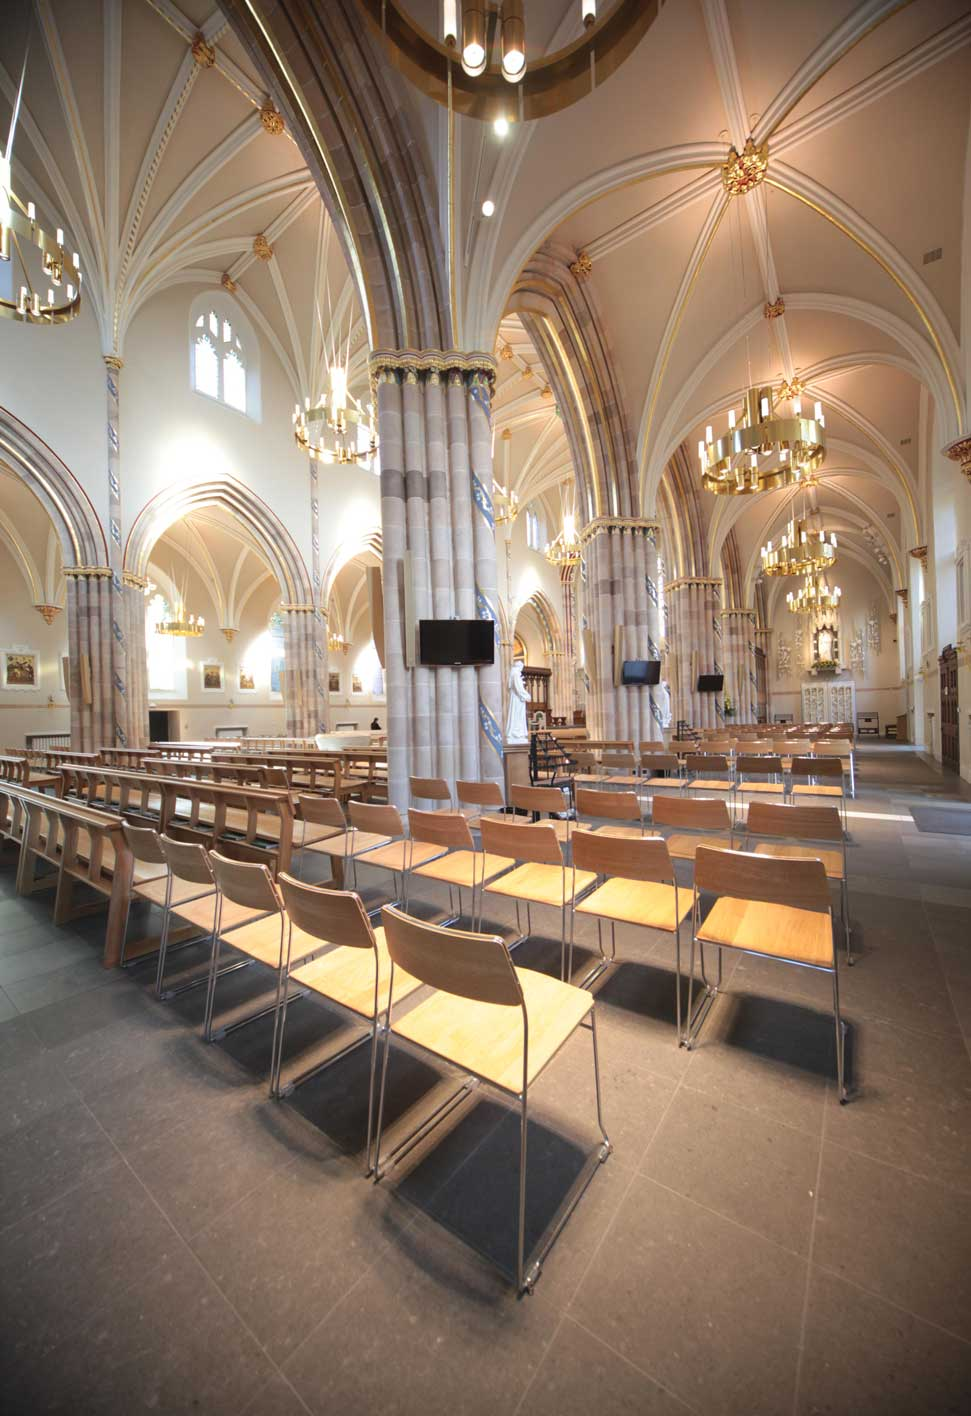 Chairs stacking metal frame all wooden bespoke design church cathedral portrait rear of church